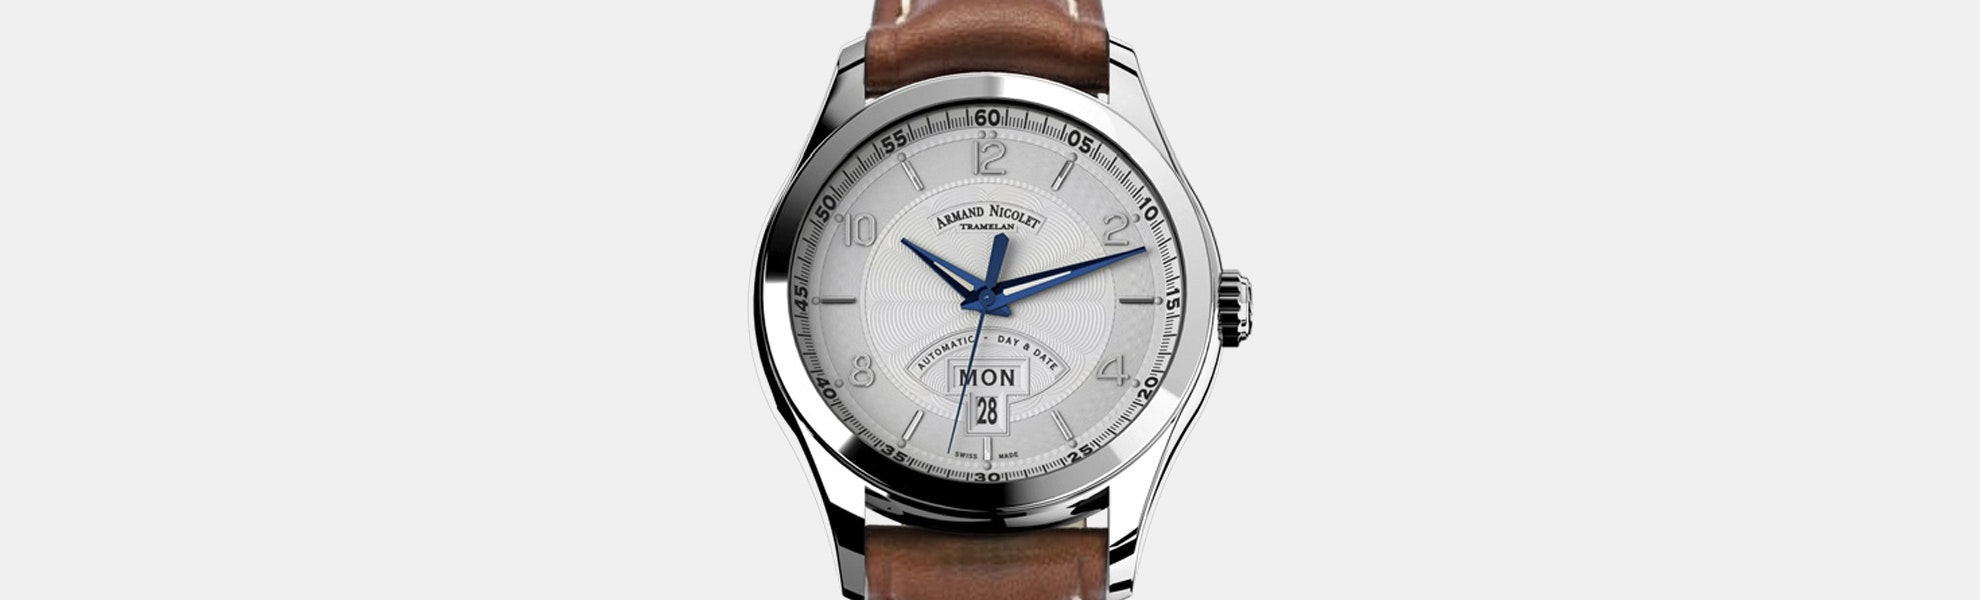 Armand Nicolet M02 Day & Date Automatic Watch